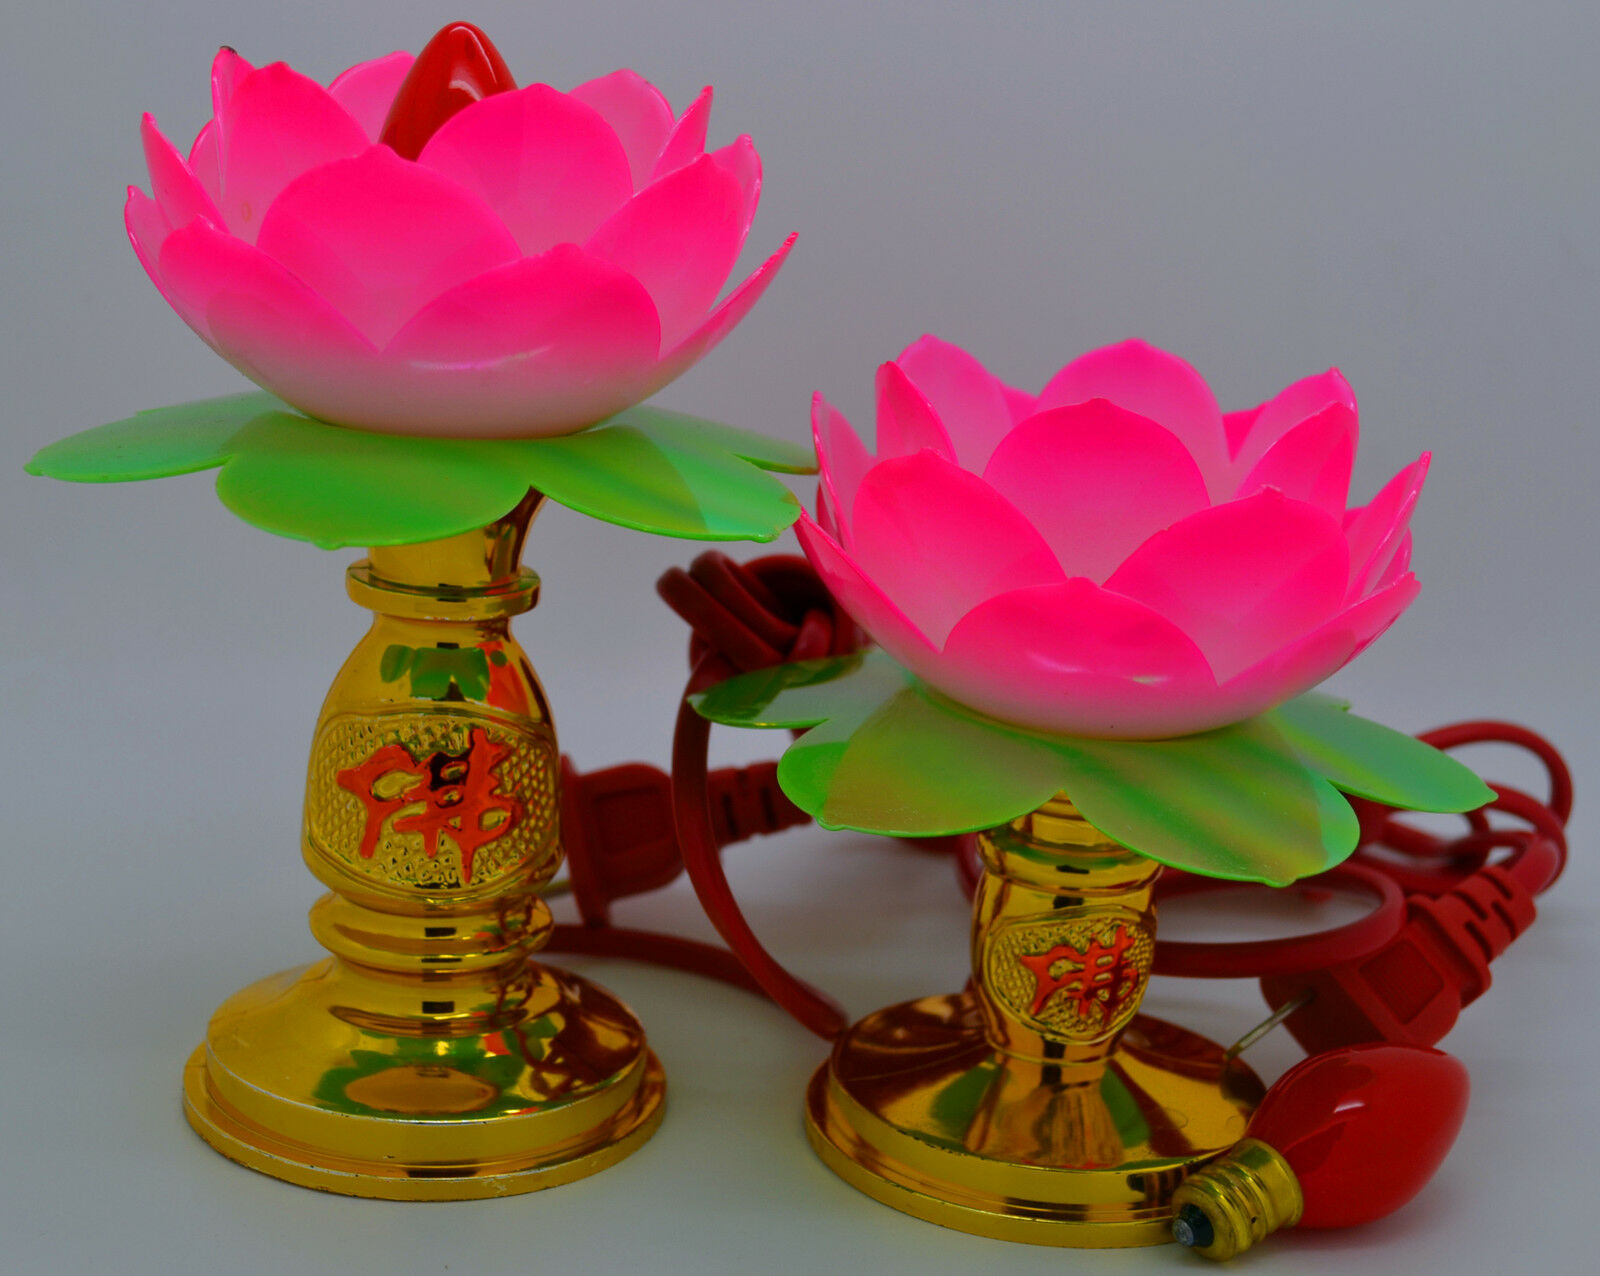 Lotus Altar Light Flower Electric Lamp Lantern Decor Zen Buddhism